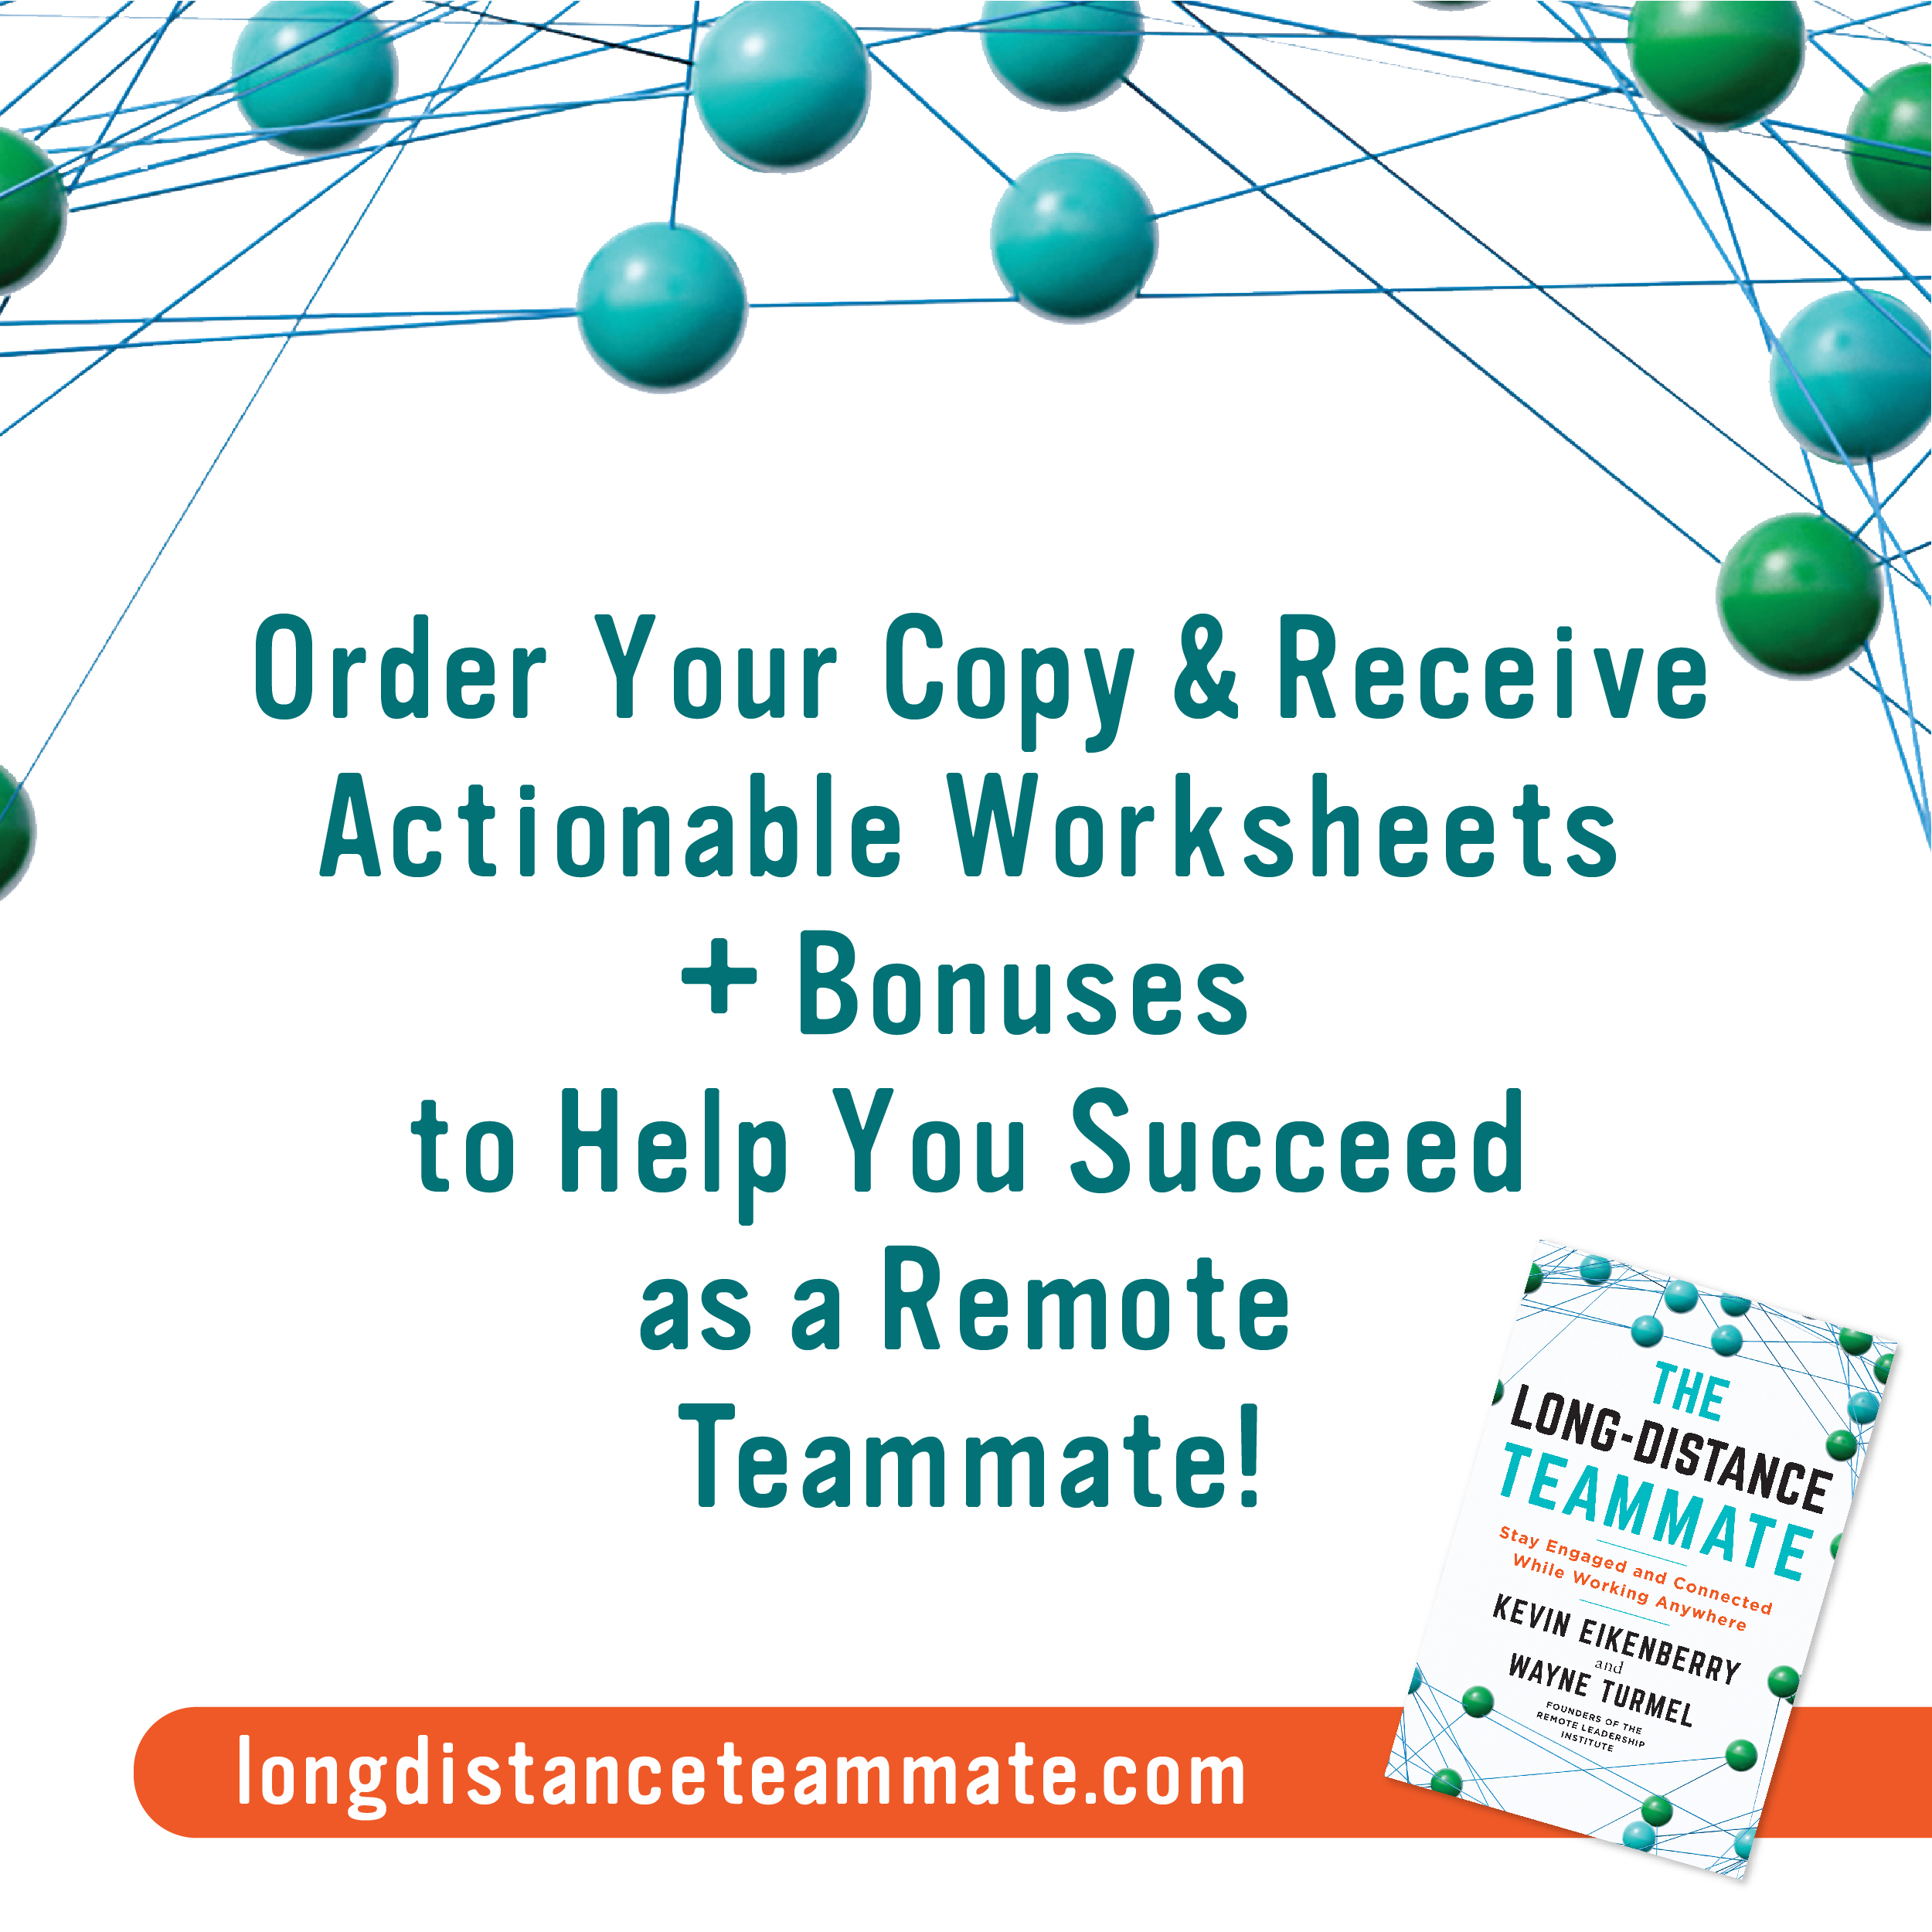 Order your copy of The Long-Distance Teammate